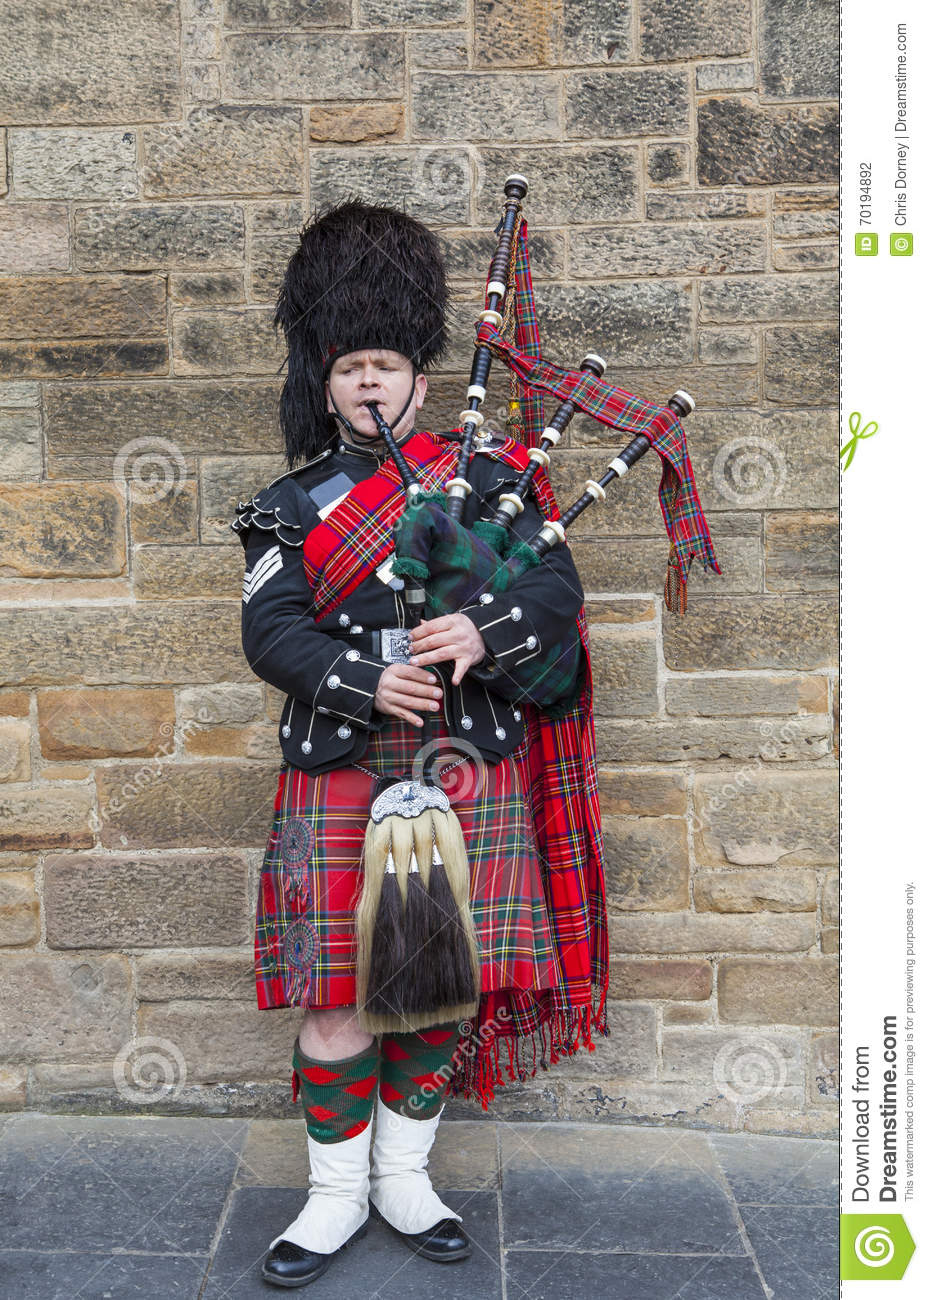 piper in tradition scottish in edinburgh editorial